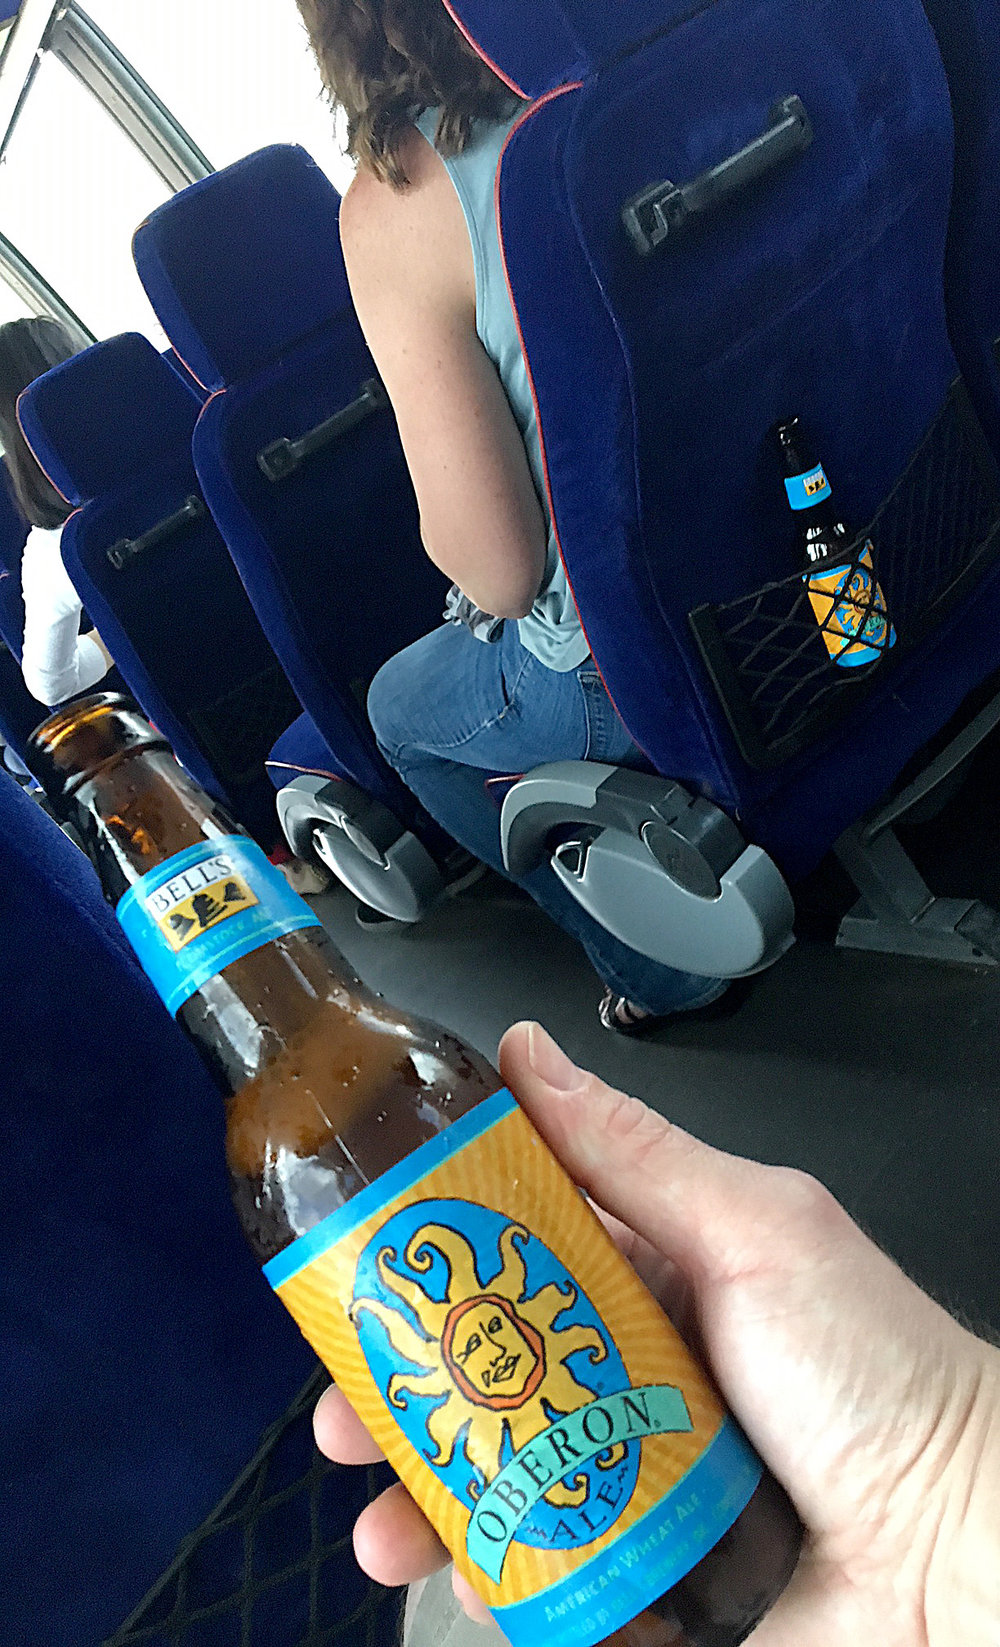 More bus beer. Headed toward the river for a riverboat cruise.